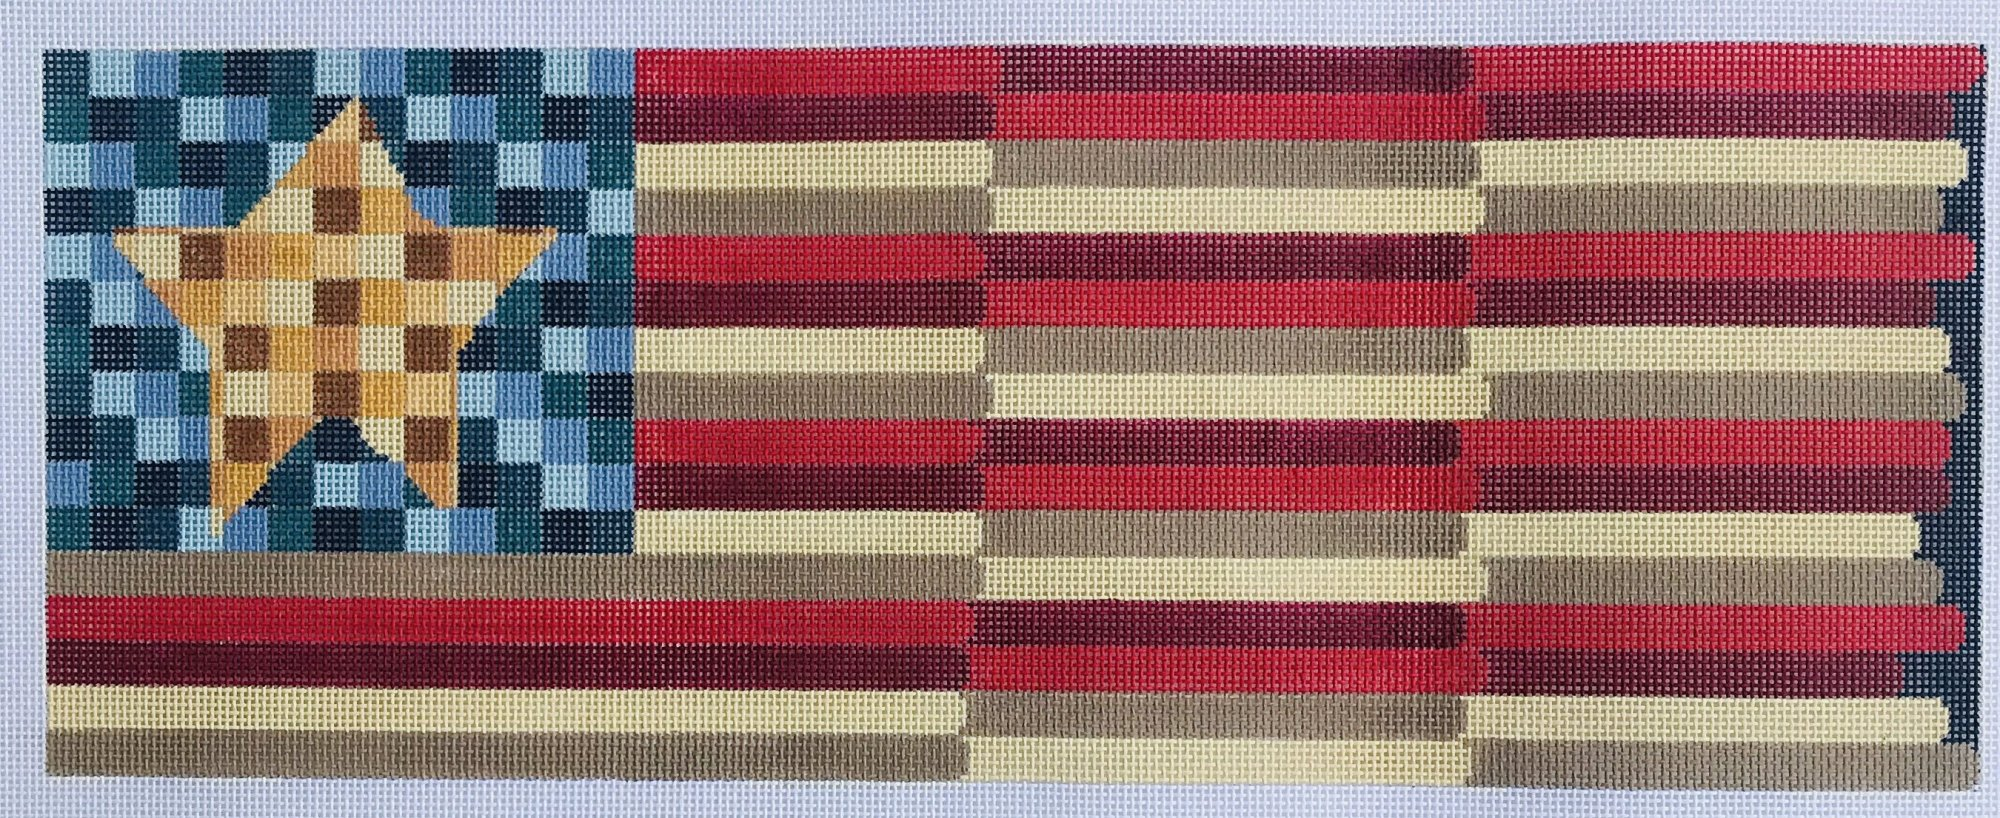 Waving Flag wtih Squares and Stripes